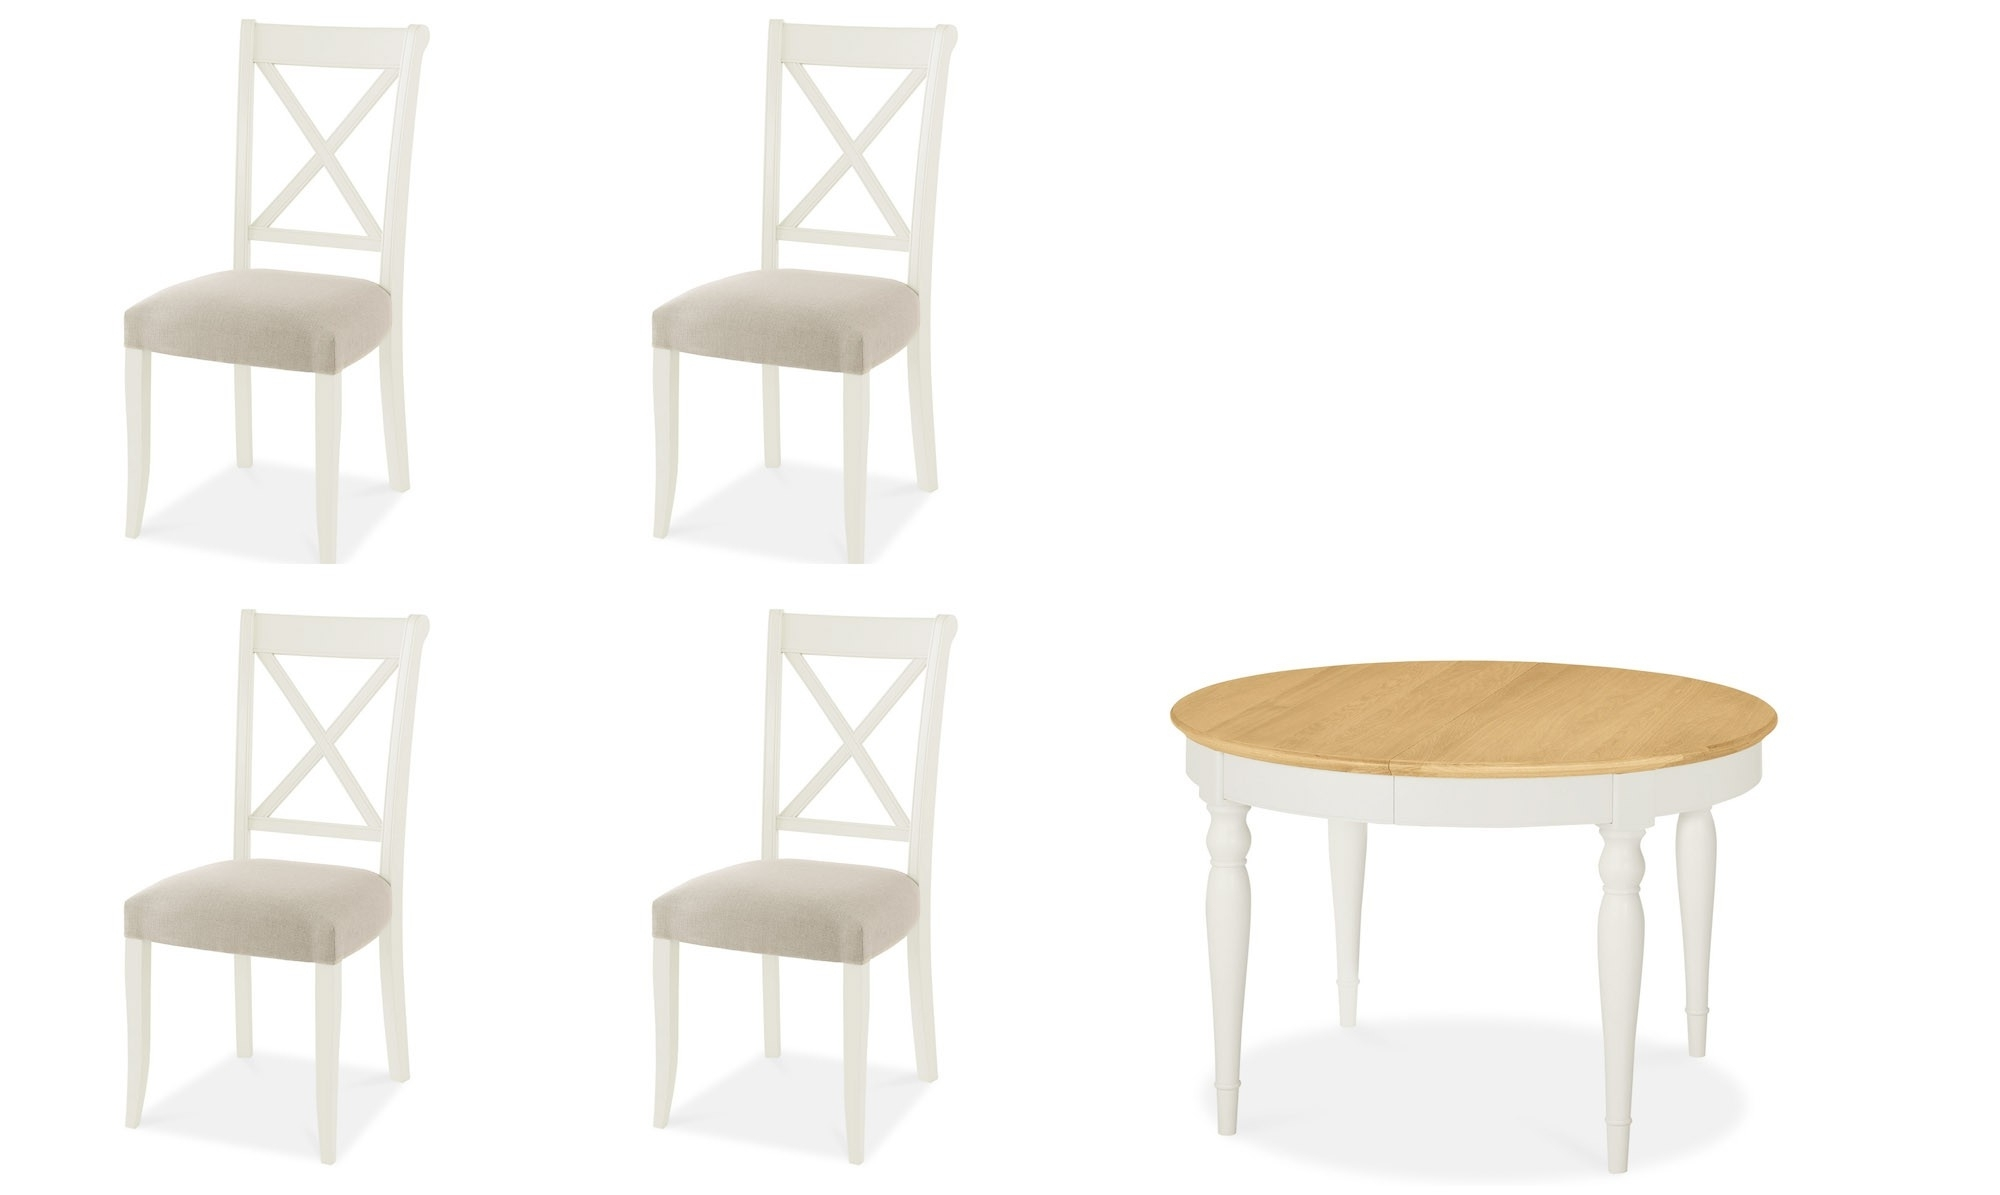 Georgie – Round Extending Dining Table And Chairs In Cream – Oak Top Pertaining To Famous Extendable Dining Tables And 4 Chairs (View 10 of 25)